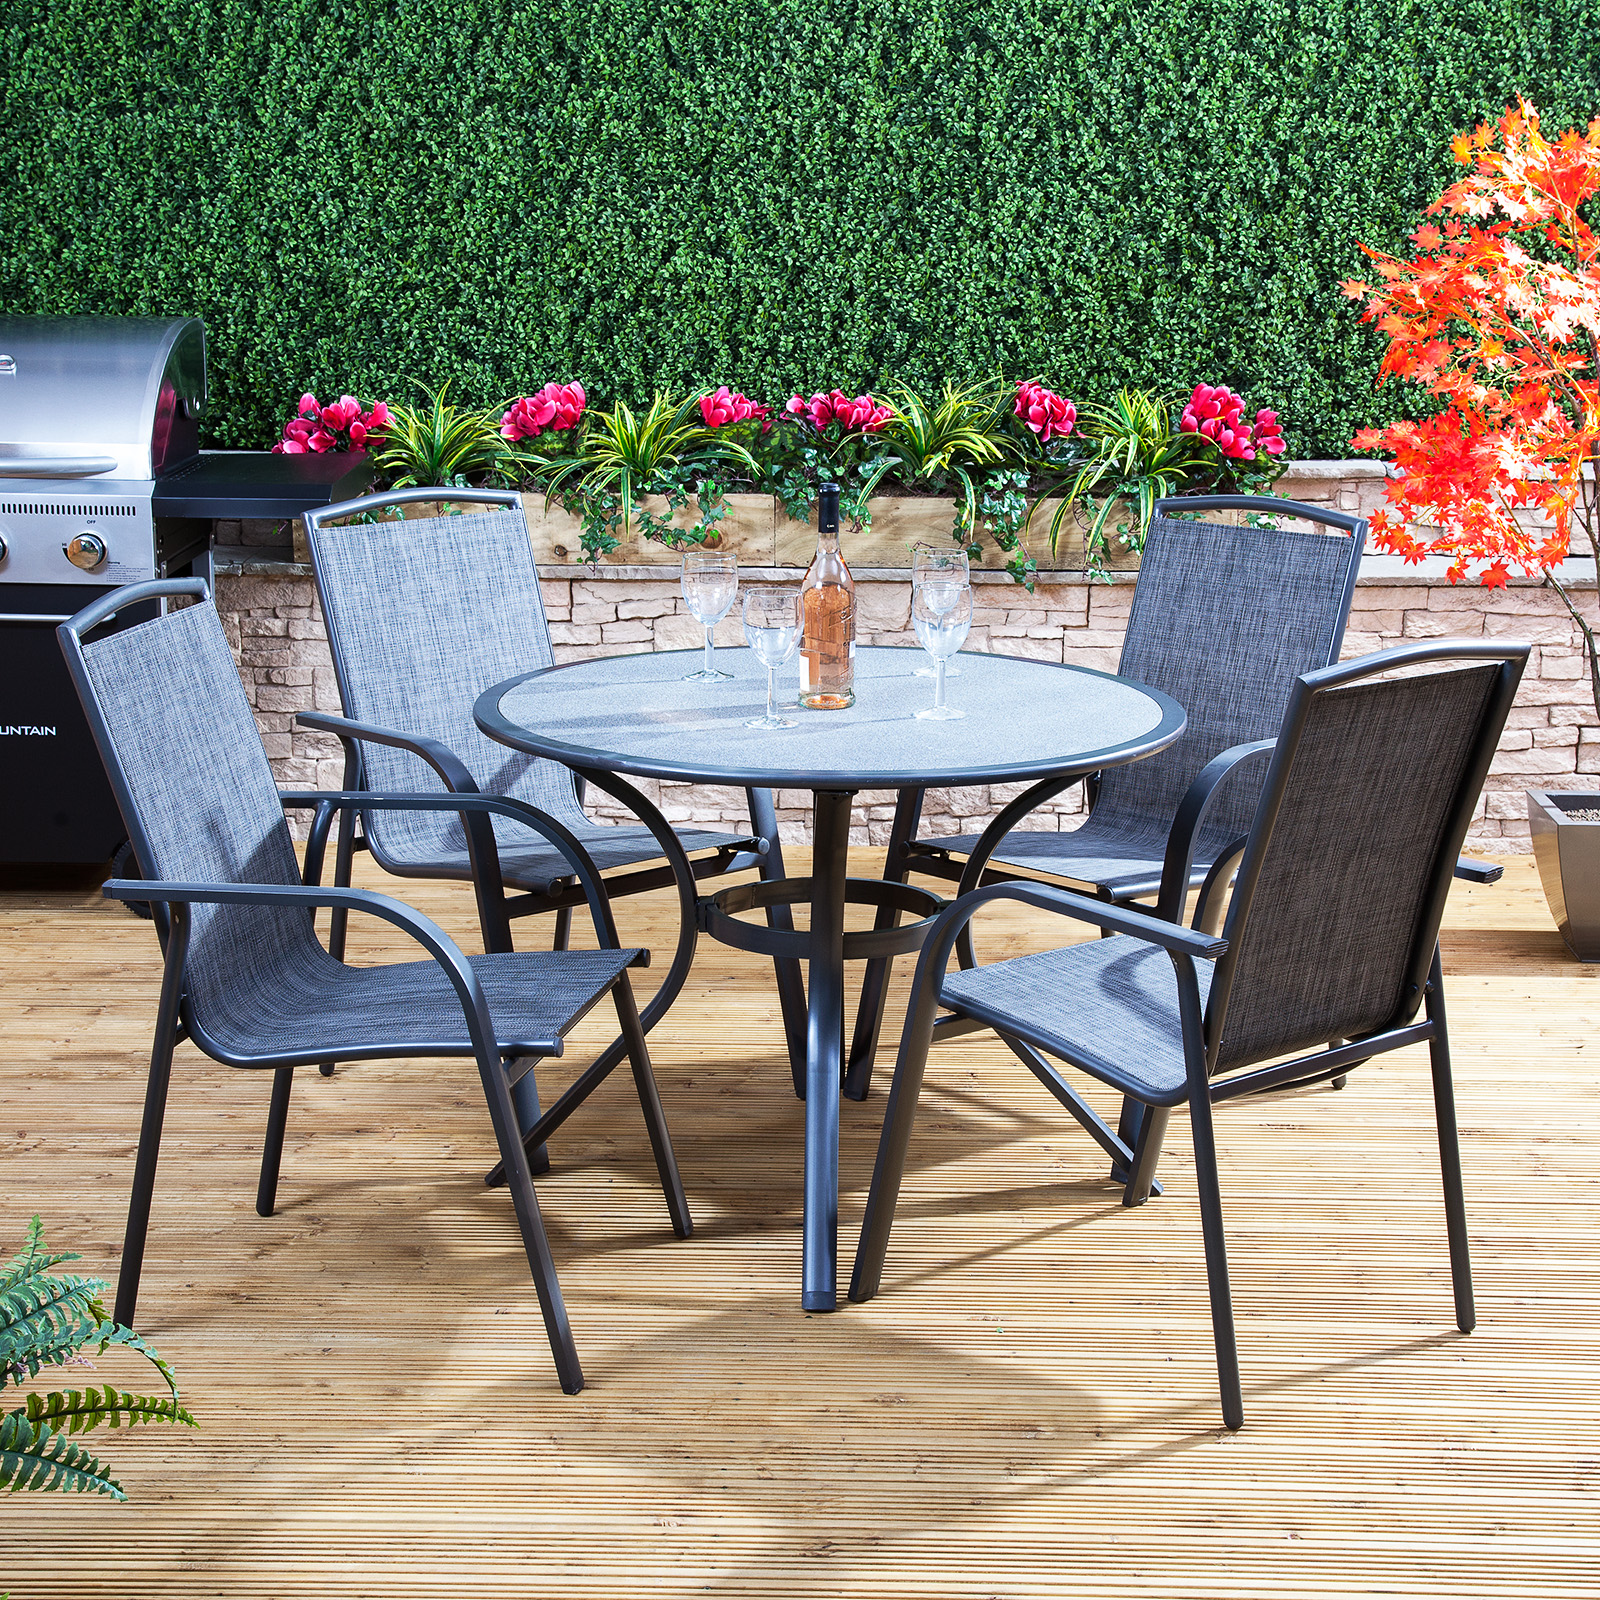 Alfresia Arizona Round Garden Furniture Set Outdoor Dining Table And 4 Chairs Ebay